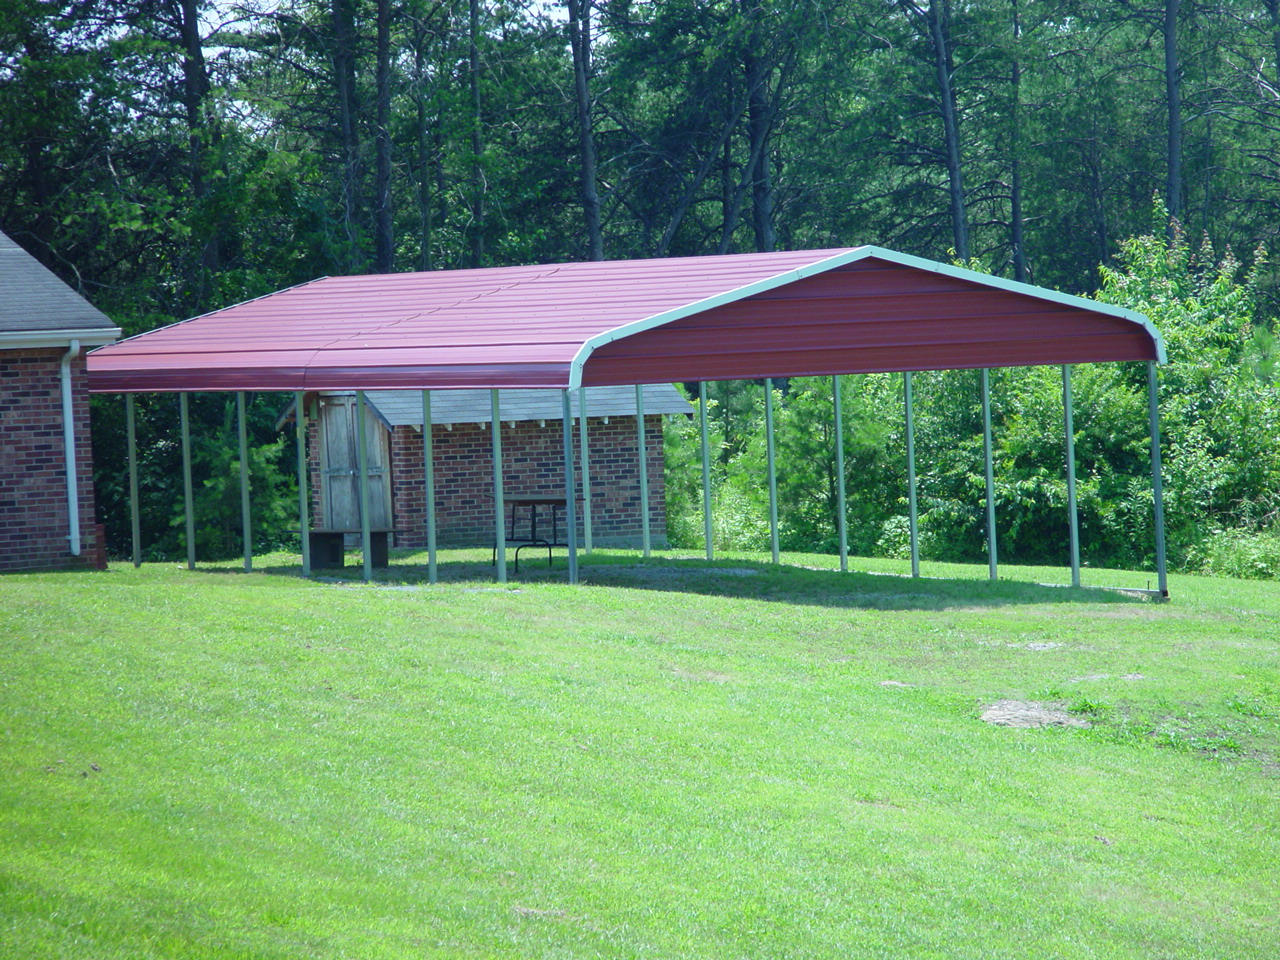 Mobile home cover with red gables and roof, with white trim.